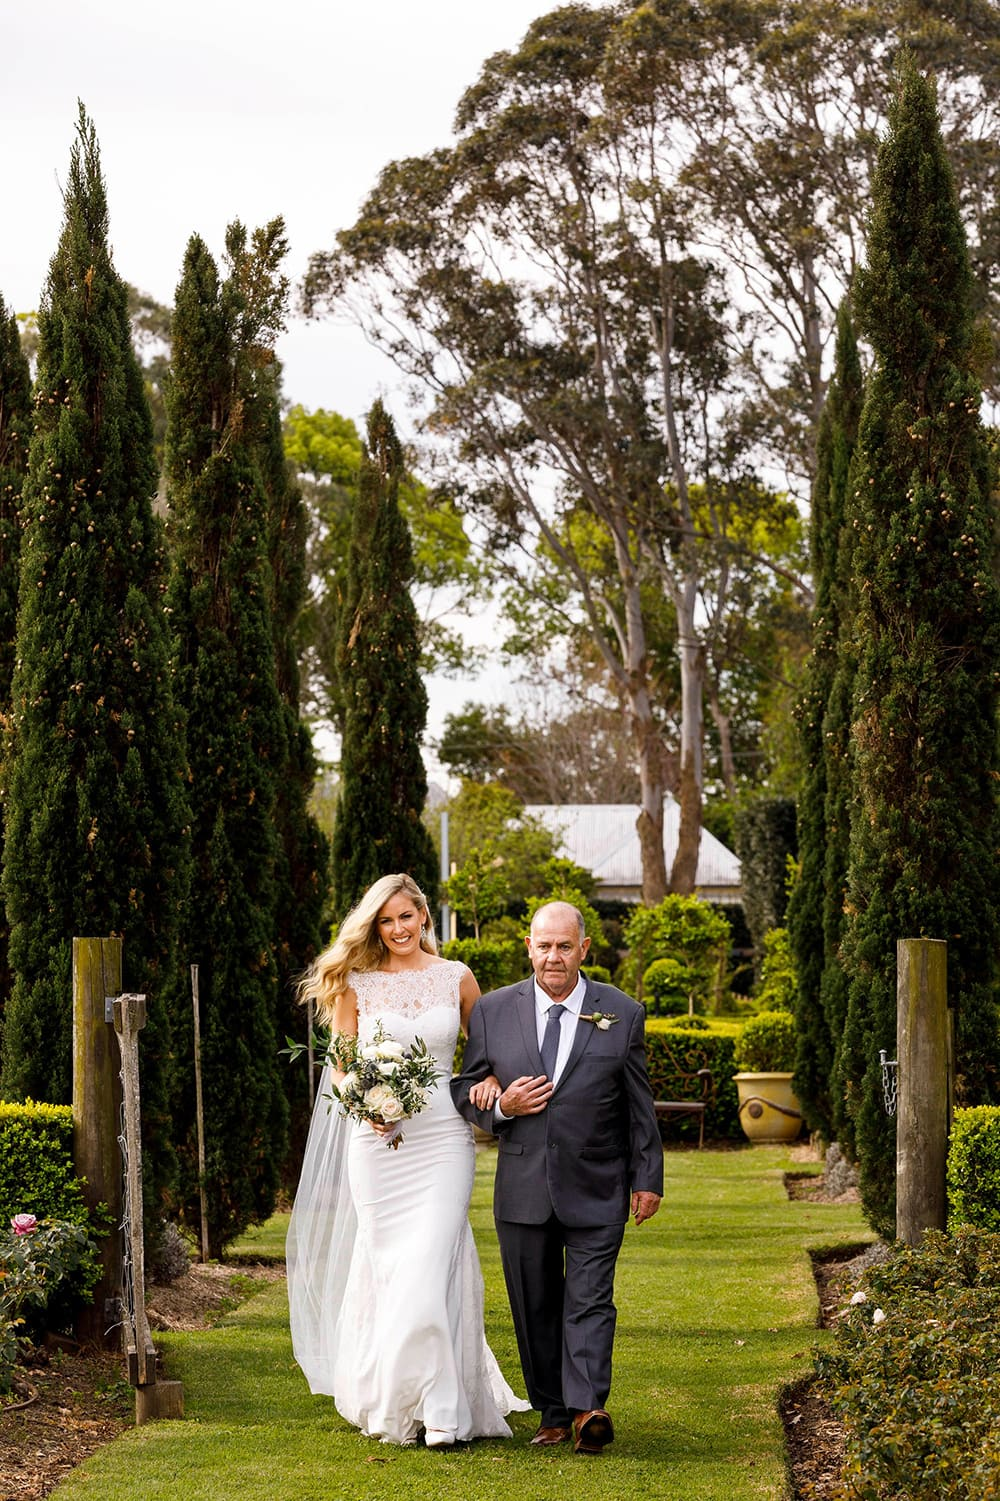 Jessica & Ben's Country Garden Party Wedding | Photography: Florent Vidal Photography